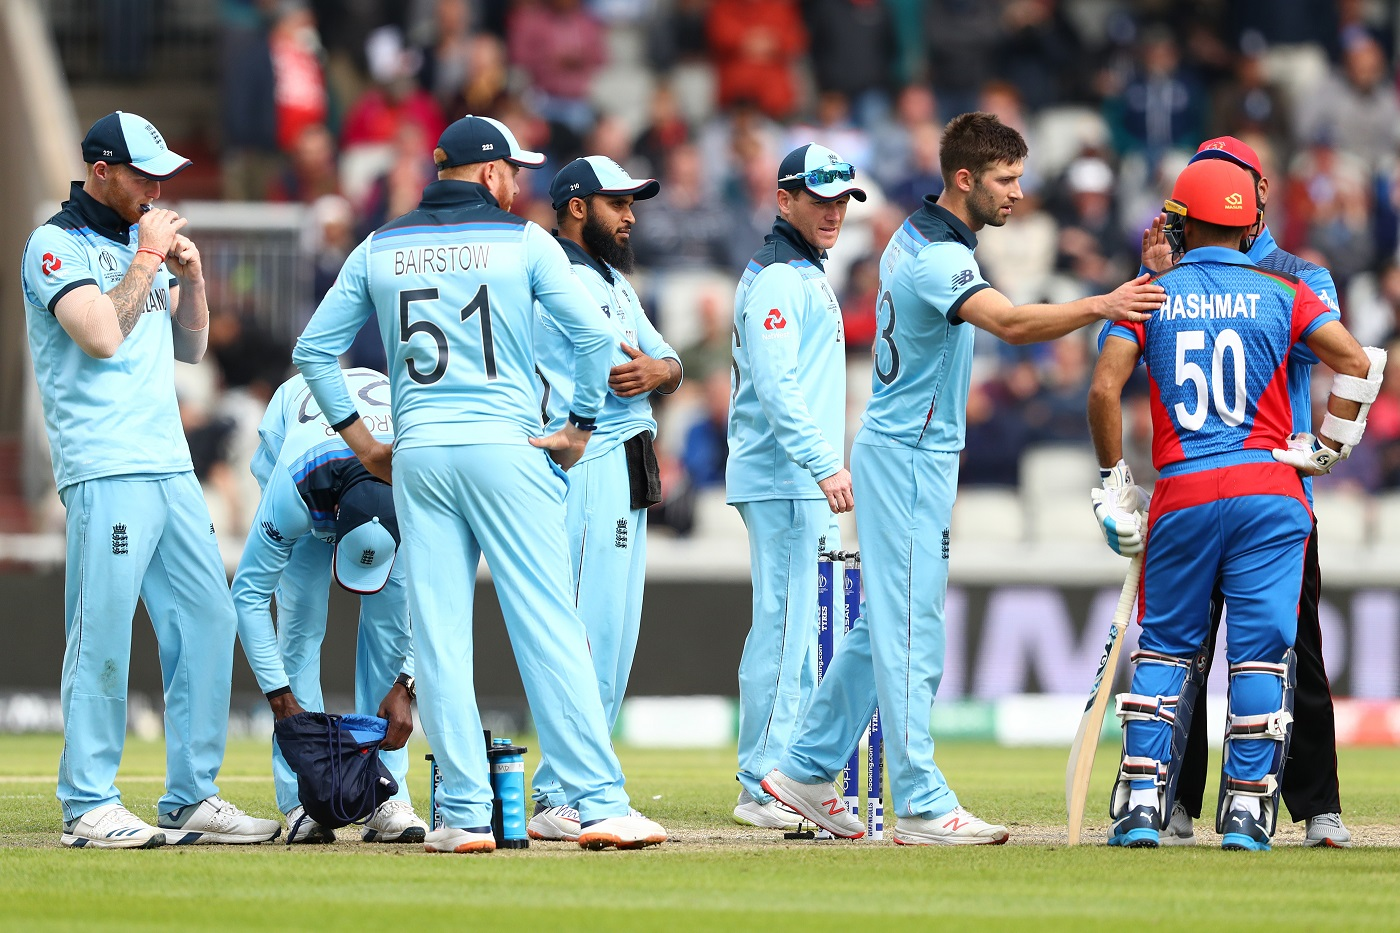 England batter Afghanistan by 150 runs in 24th match of 2019 World Cup